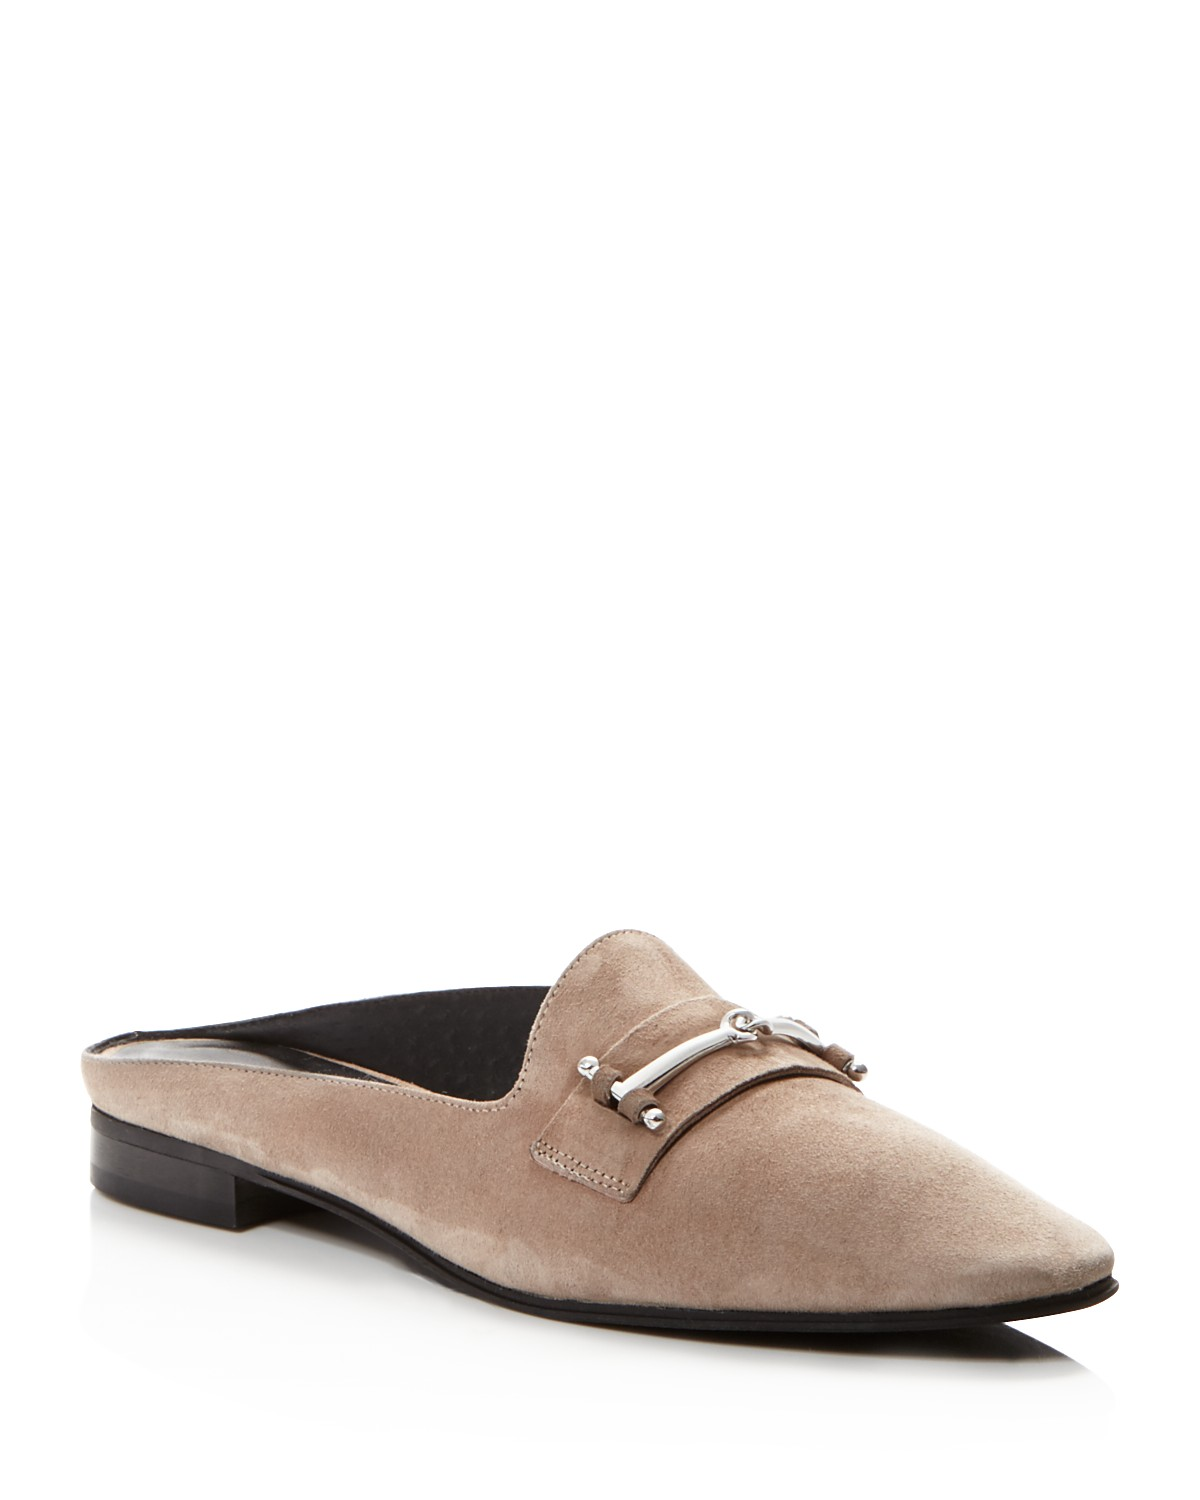 Charles David Melody Suede Mules WJ43gs8Nx